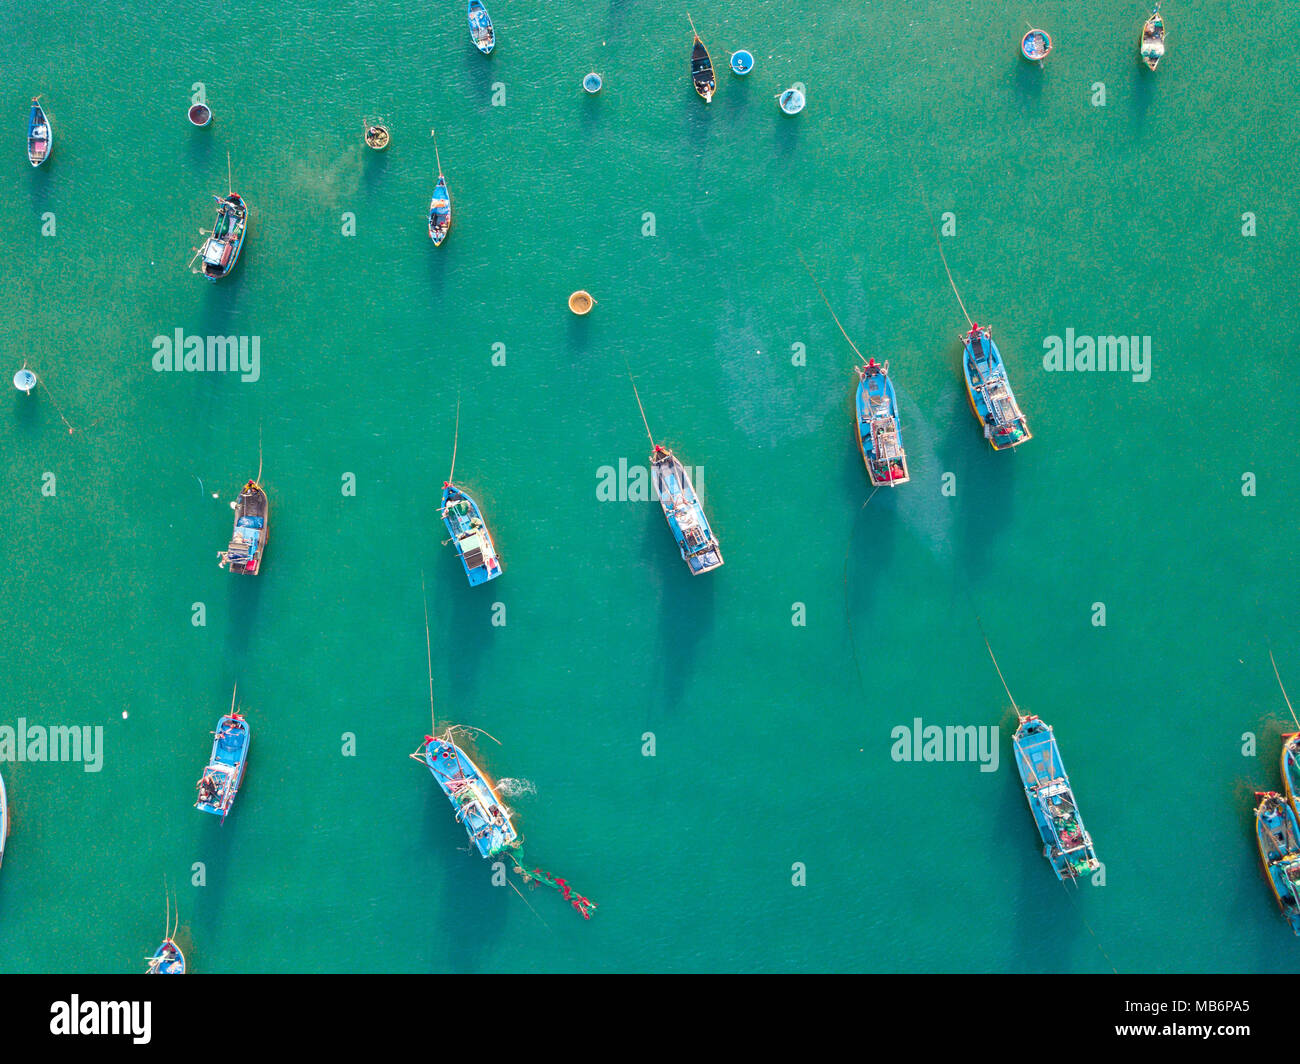 Top view. Aerial view fishing harbour from drone. Royalty high quality free stock image of basket boat at Mui Ne fishing harbour or fishing village - Stock Image